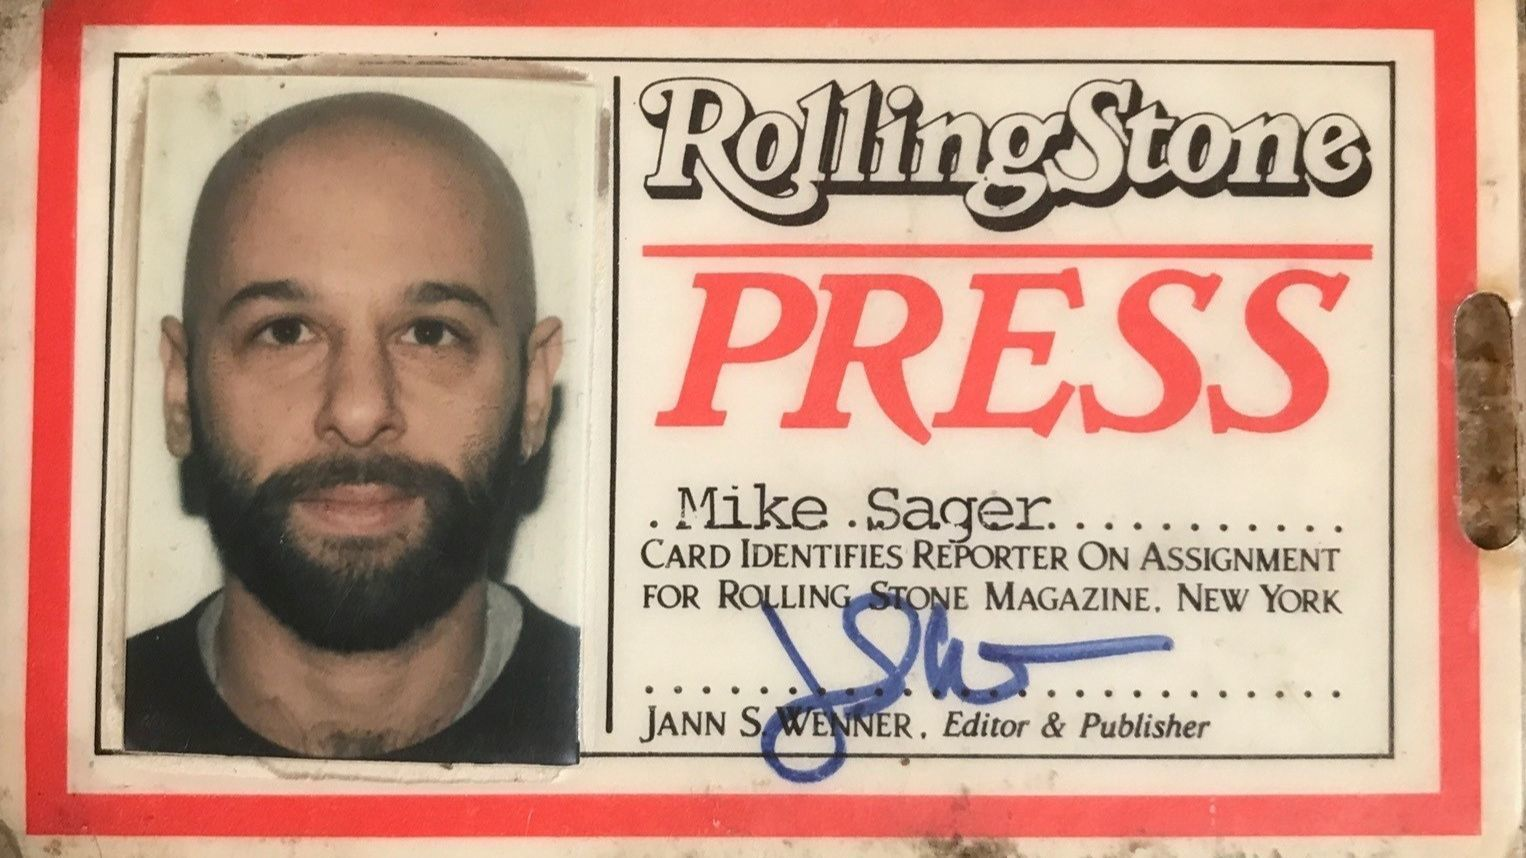 Sager's old 'Rolling Stone' press badge